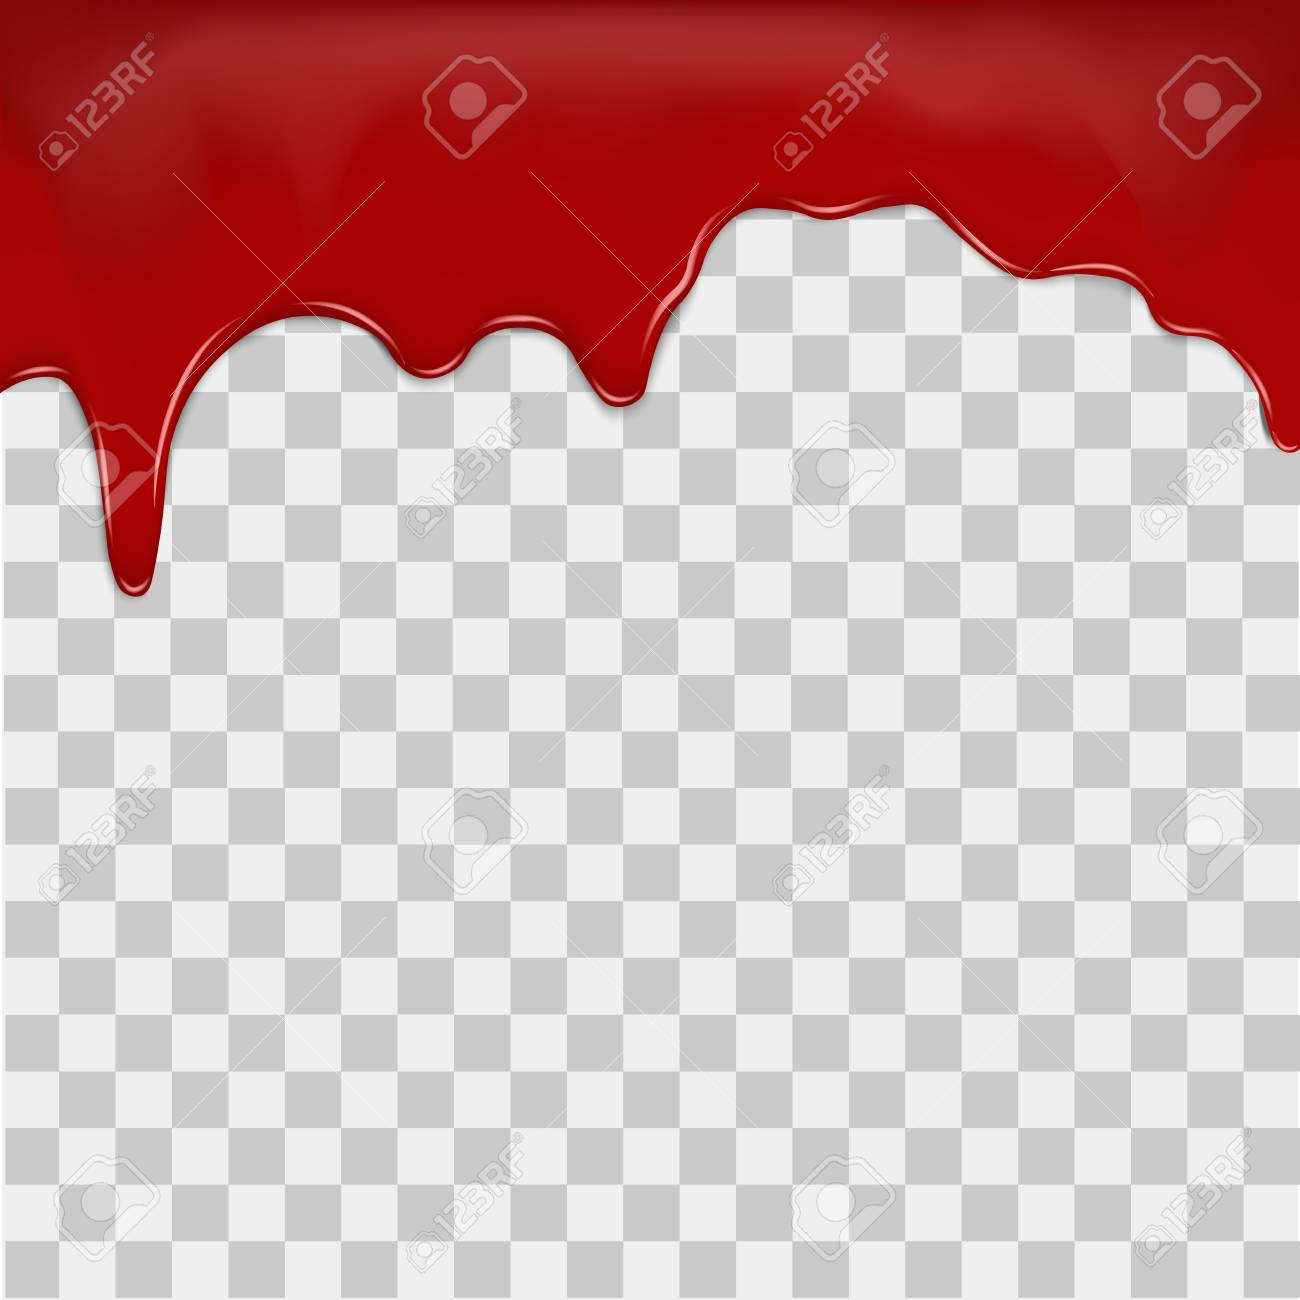 hight resolution of dripping blood clipart black and white